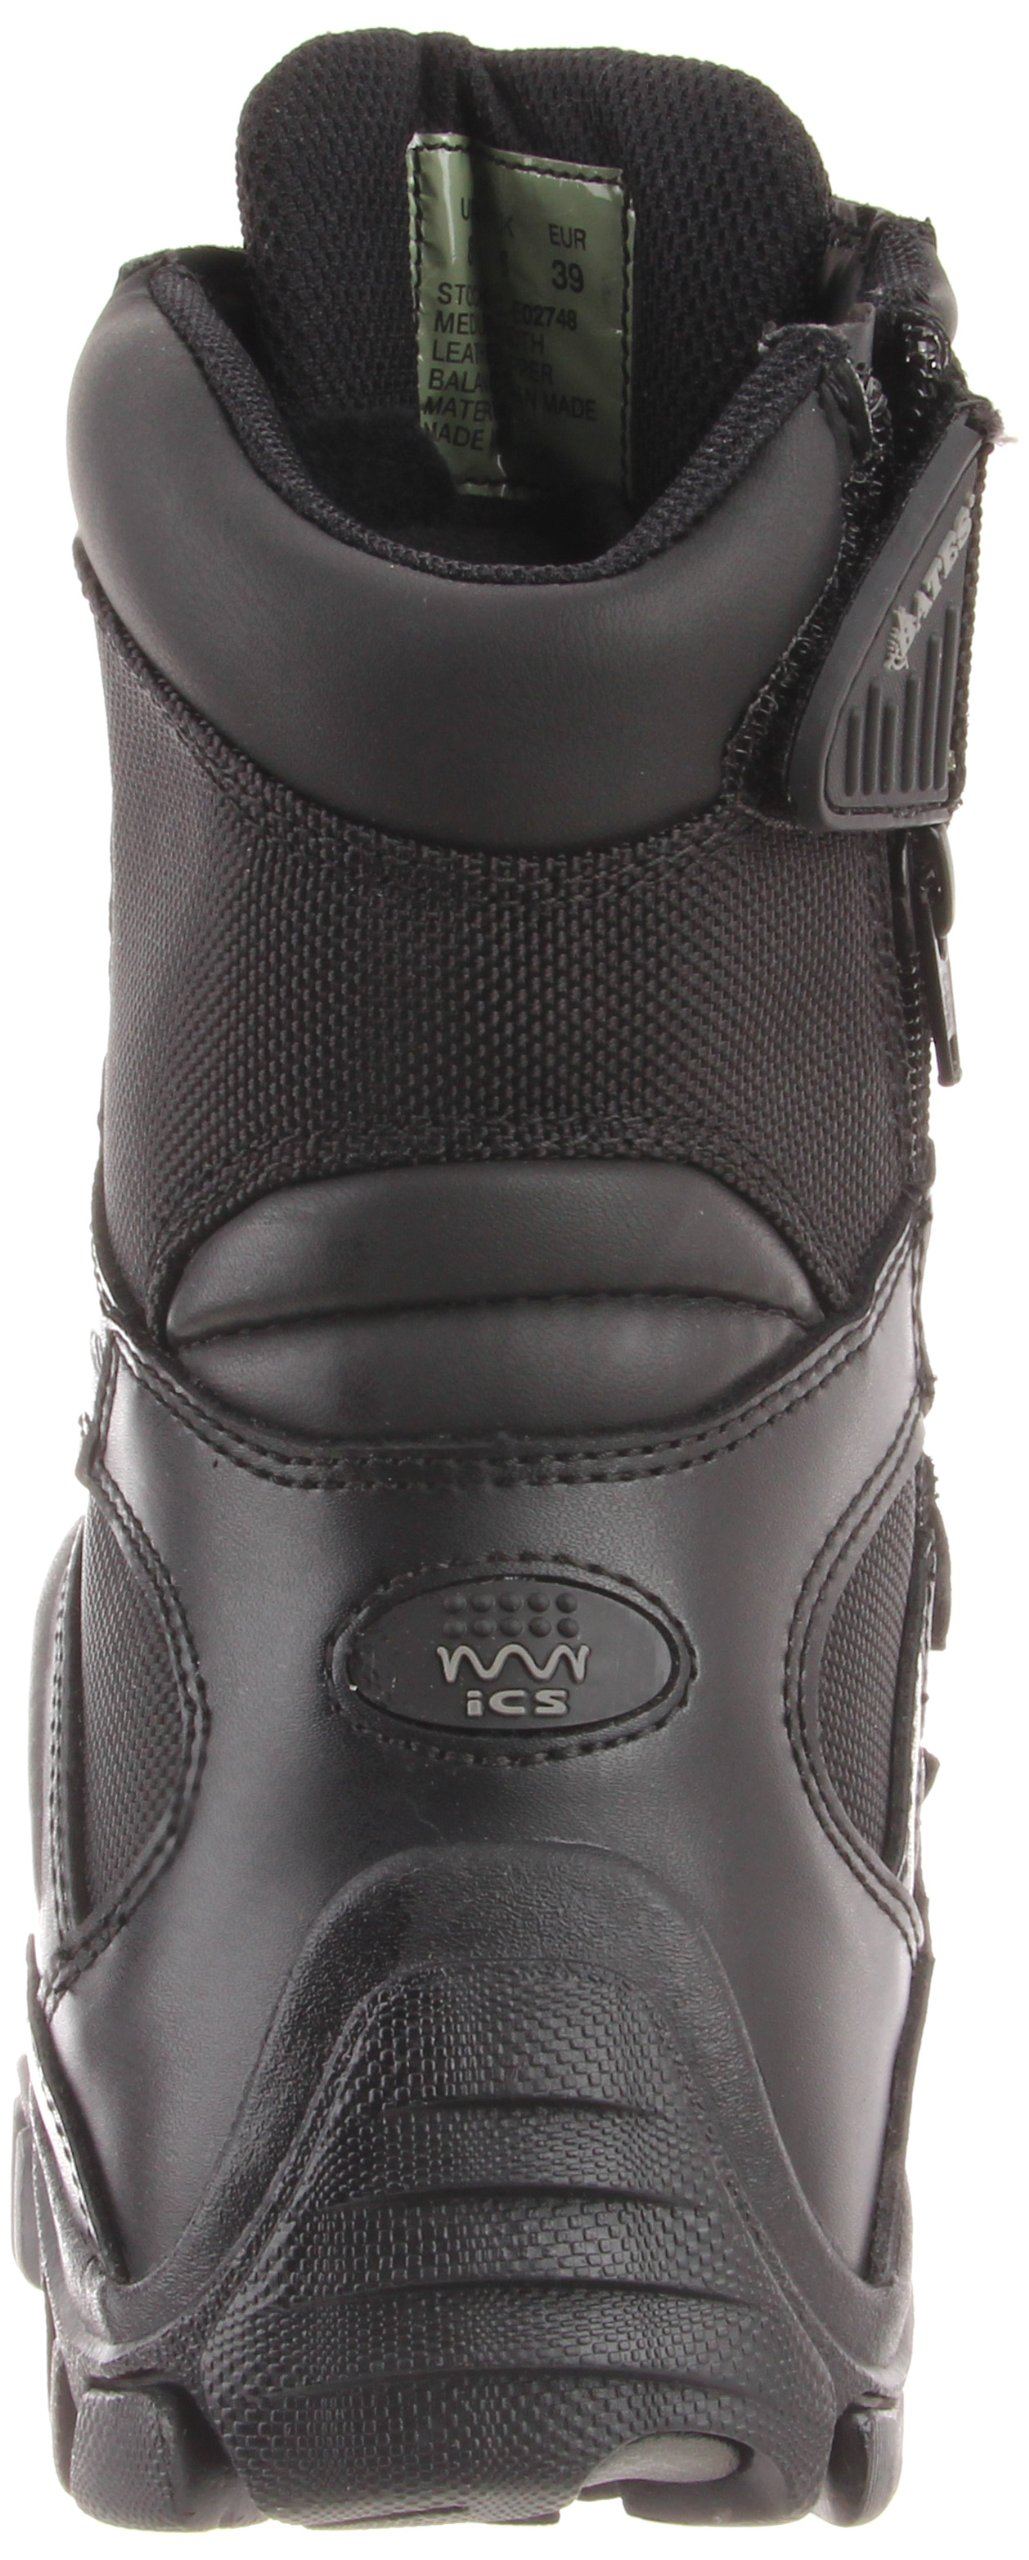 Bates Women's Delta 8 Inch Boot, Black, 8 M US by Bates (Image #2)